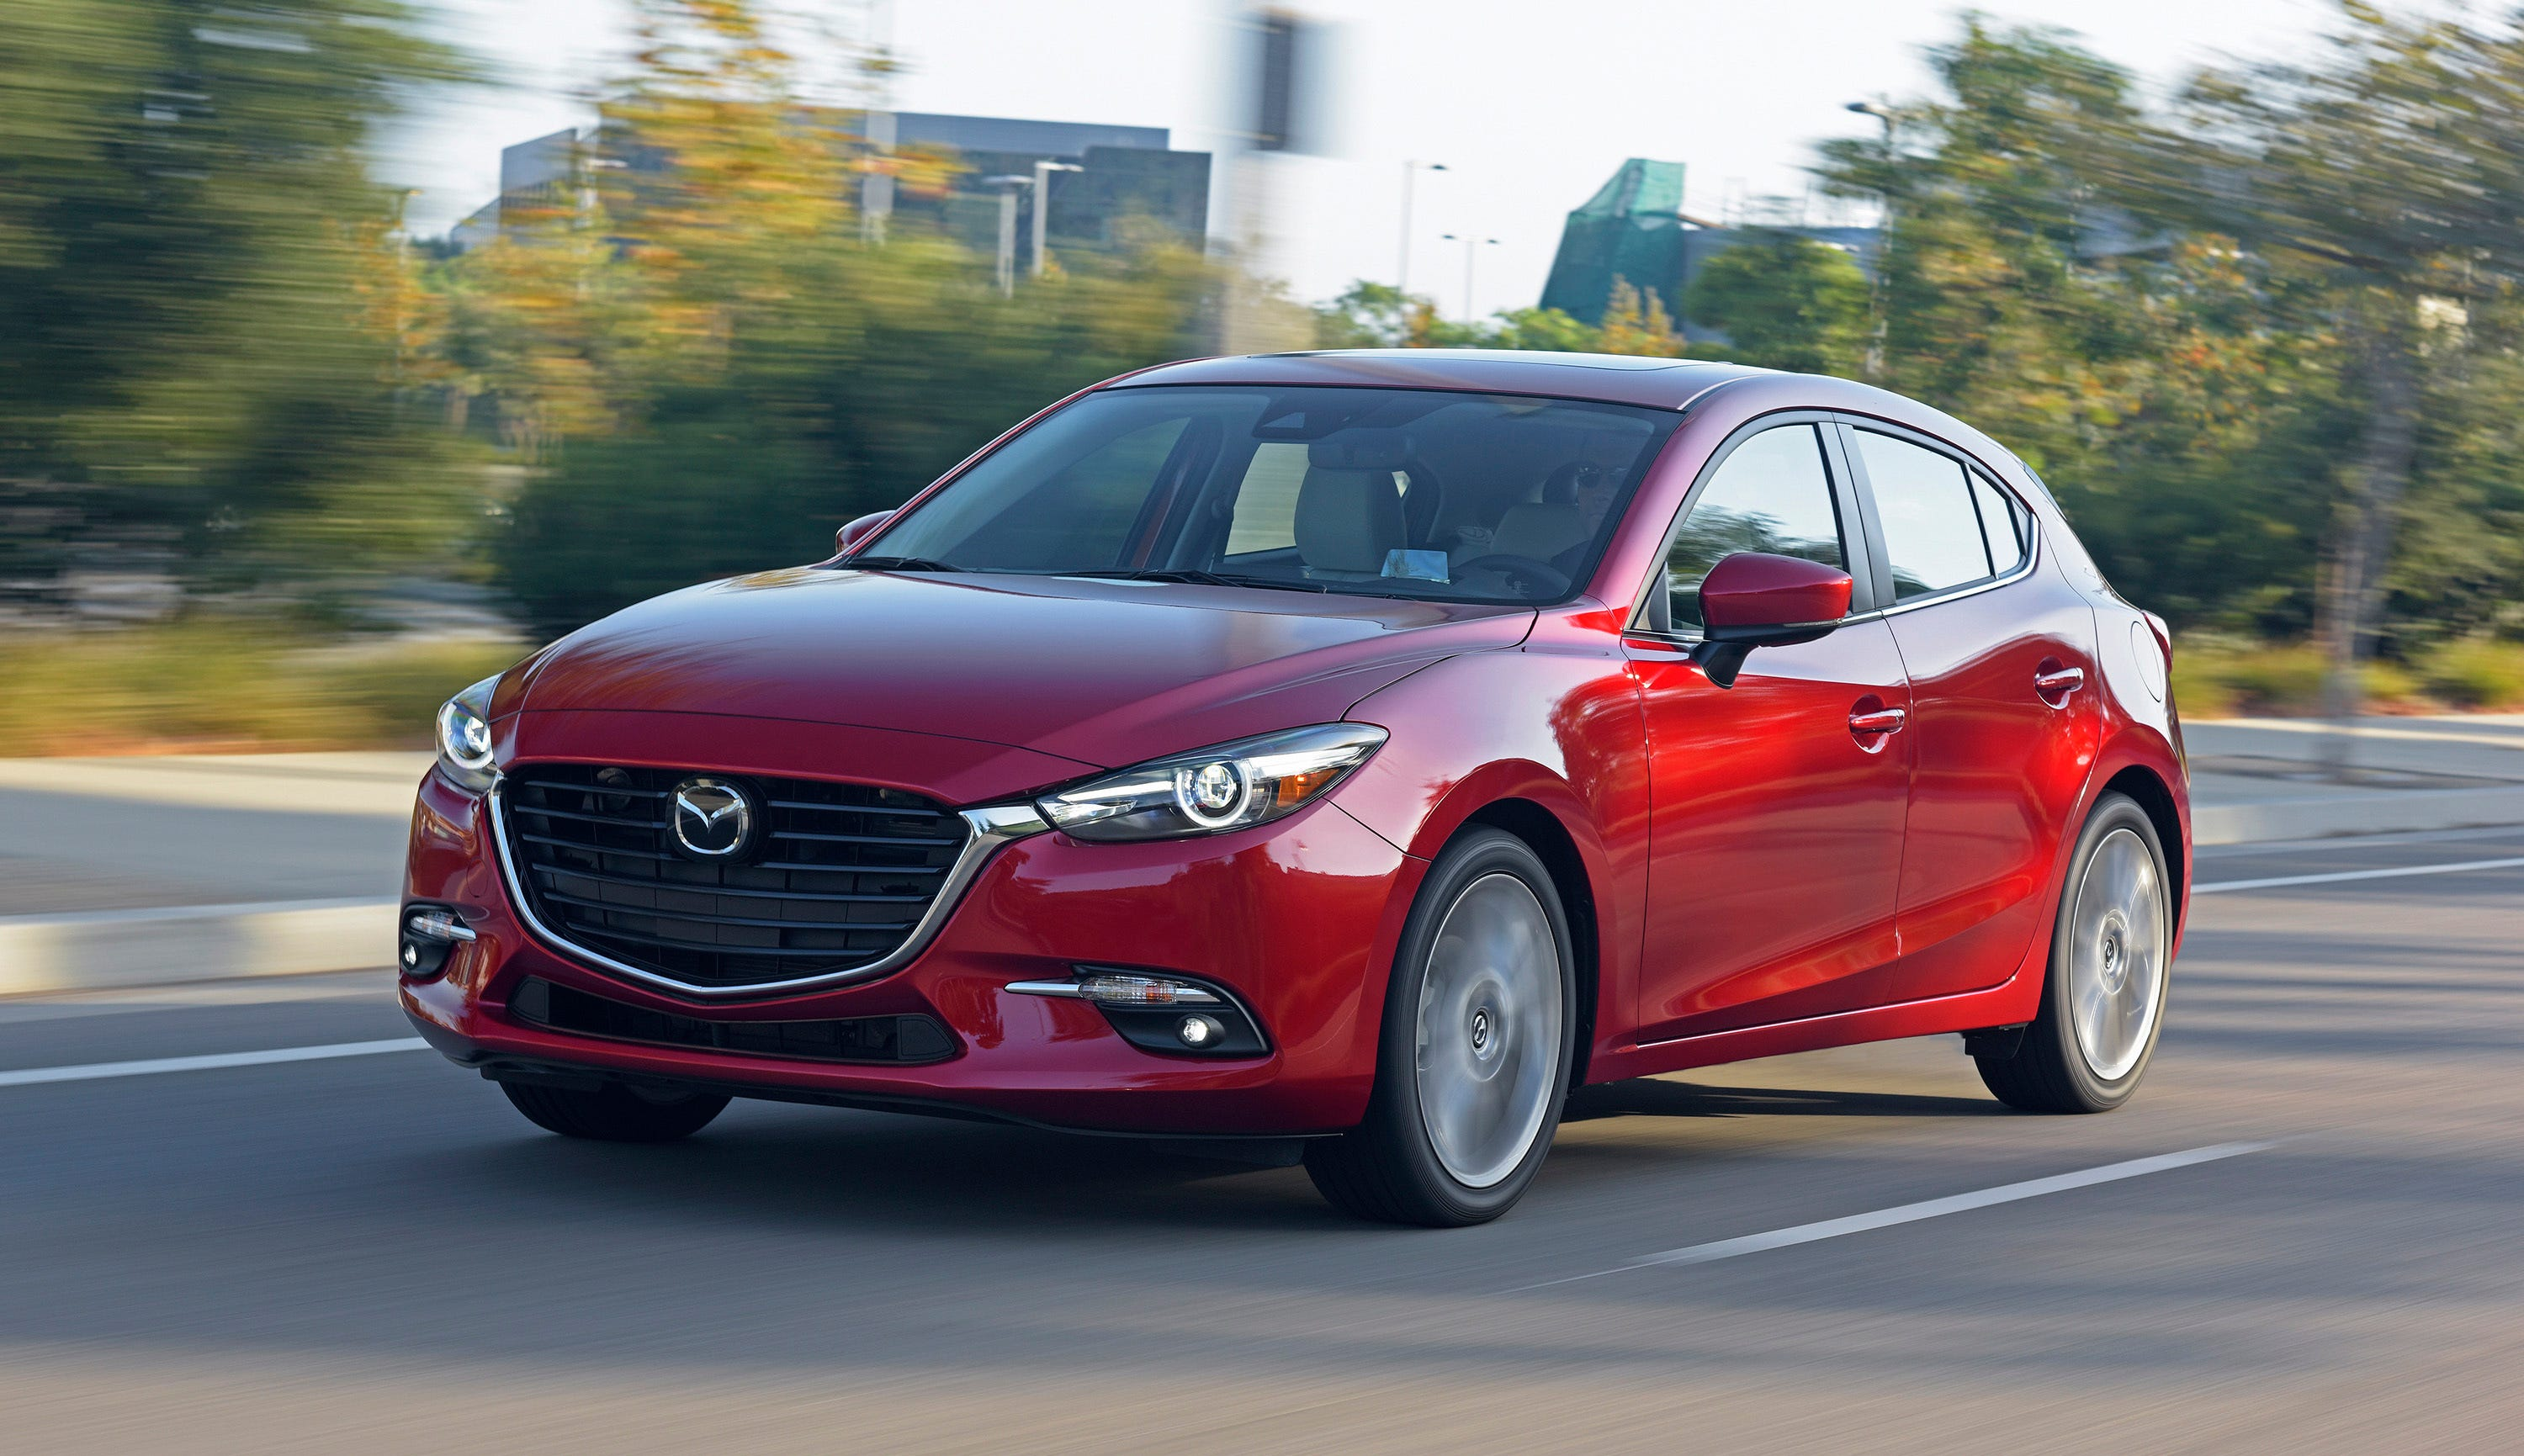 This undated photo provided by Mazda shows the 2018 Mazda 3. While the Civic is one of the most impressive vehicles in its class, it's not the only compact to offer buyers a little something extra. The Mazda 3 also sets itself apart with a well-appointed interior and sporty driving dynamics. (Morgan J Segal Photography/Mazda North American Operations via AP)